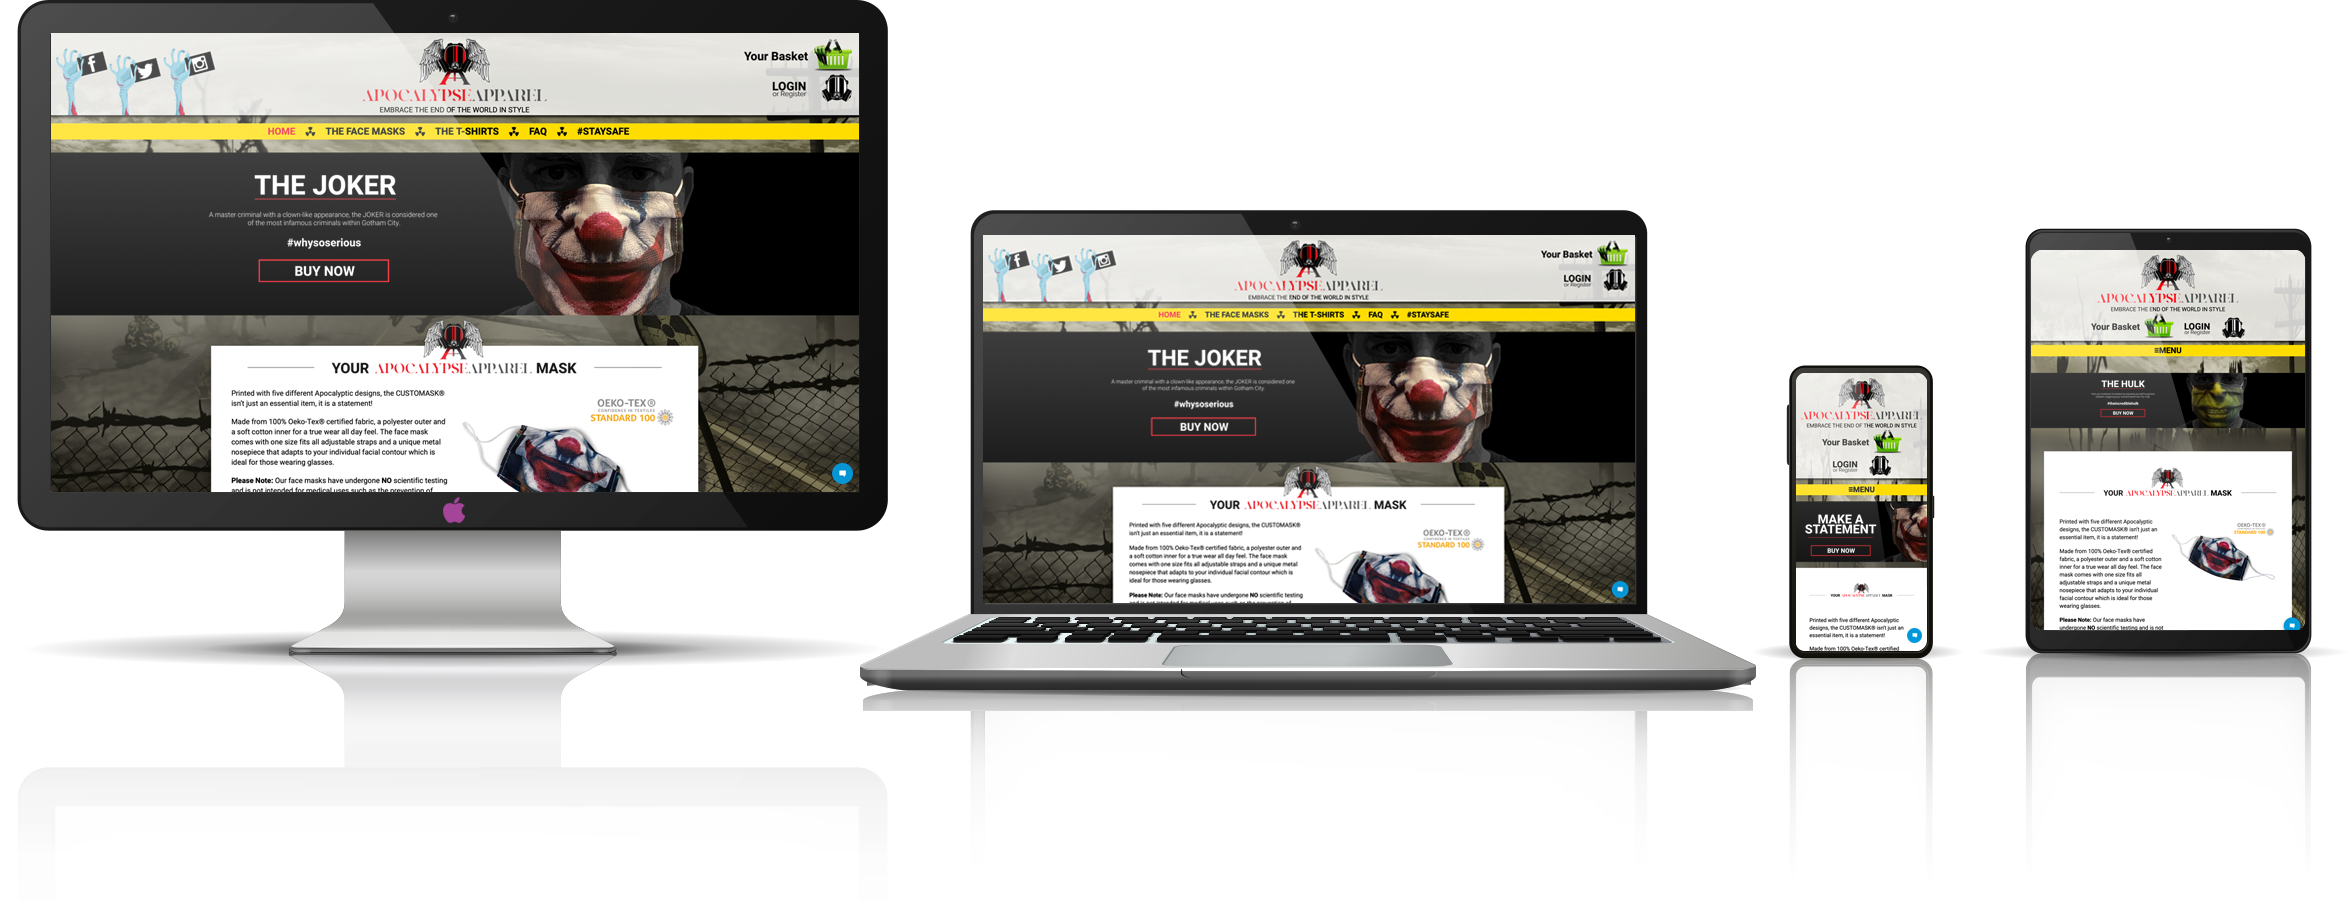 iMac, MacBook, iPhone and iPad responsive design for Apocalypse Apparel